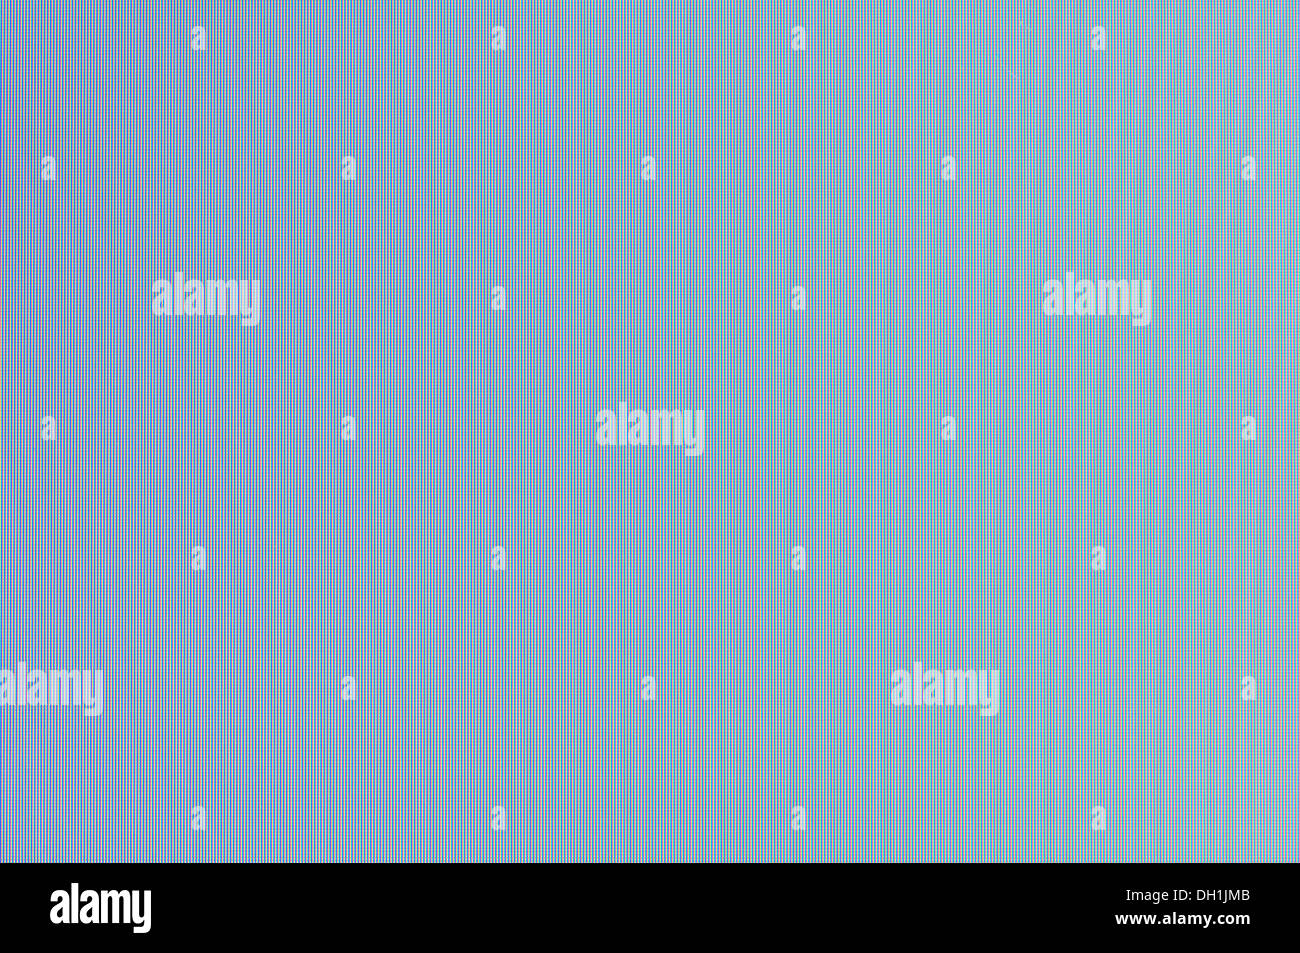 lcd screen texture background - Stock Image